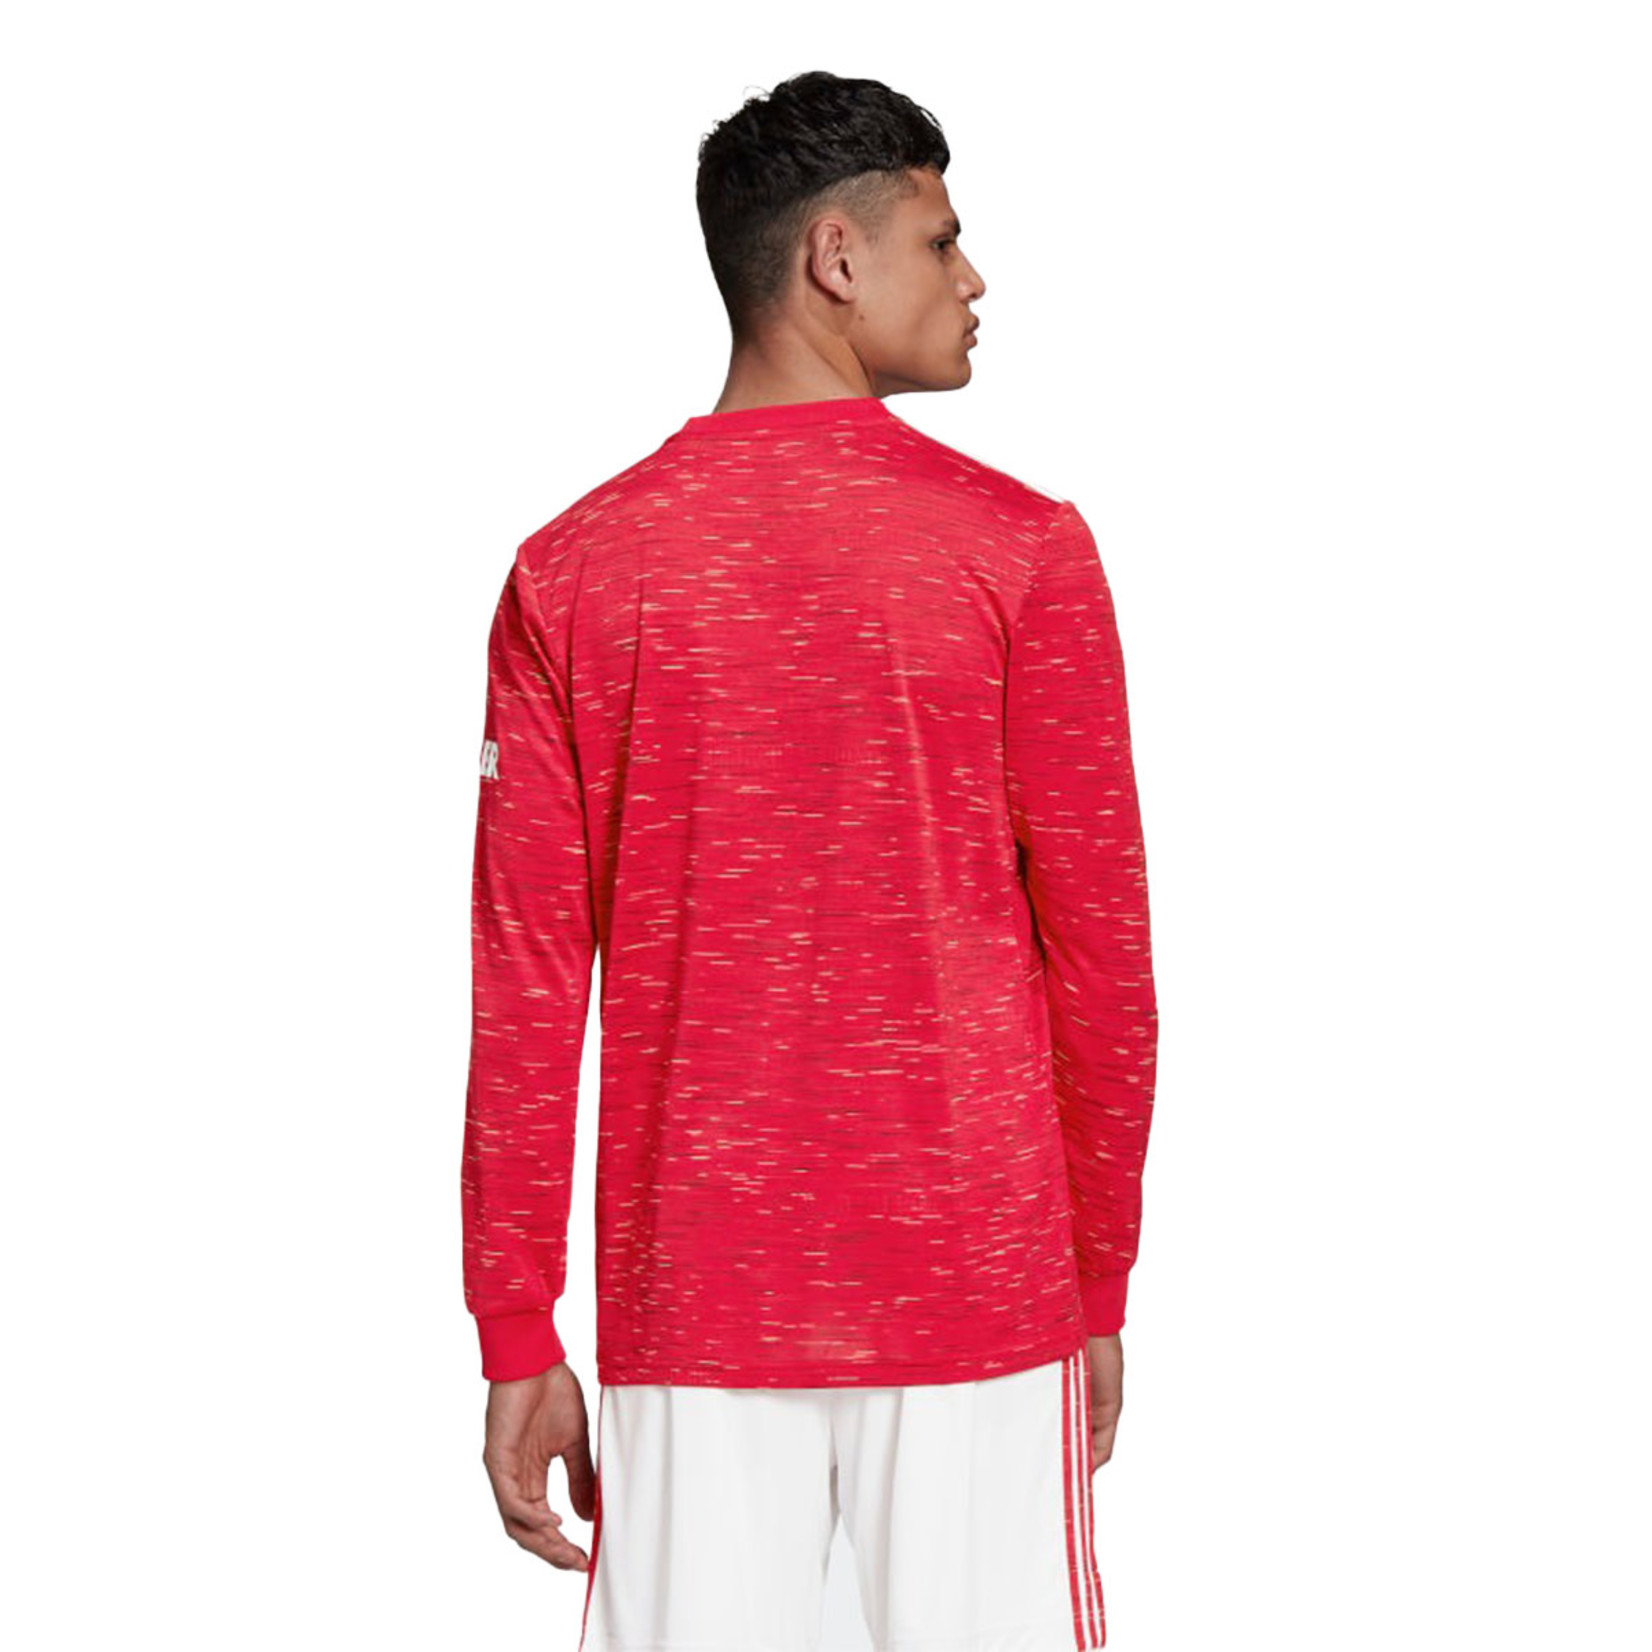 ADIDAS MANCHESTER UNITED 20/21 HOME JERSEY LS (RED)